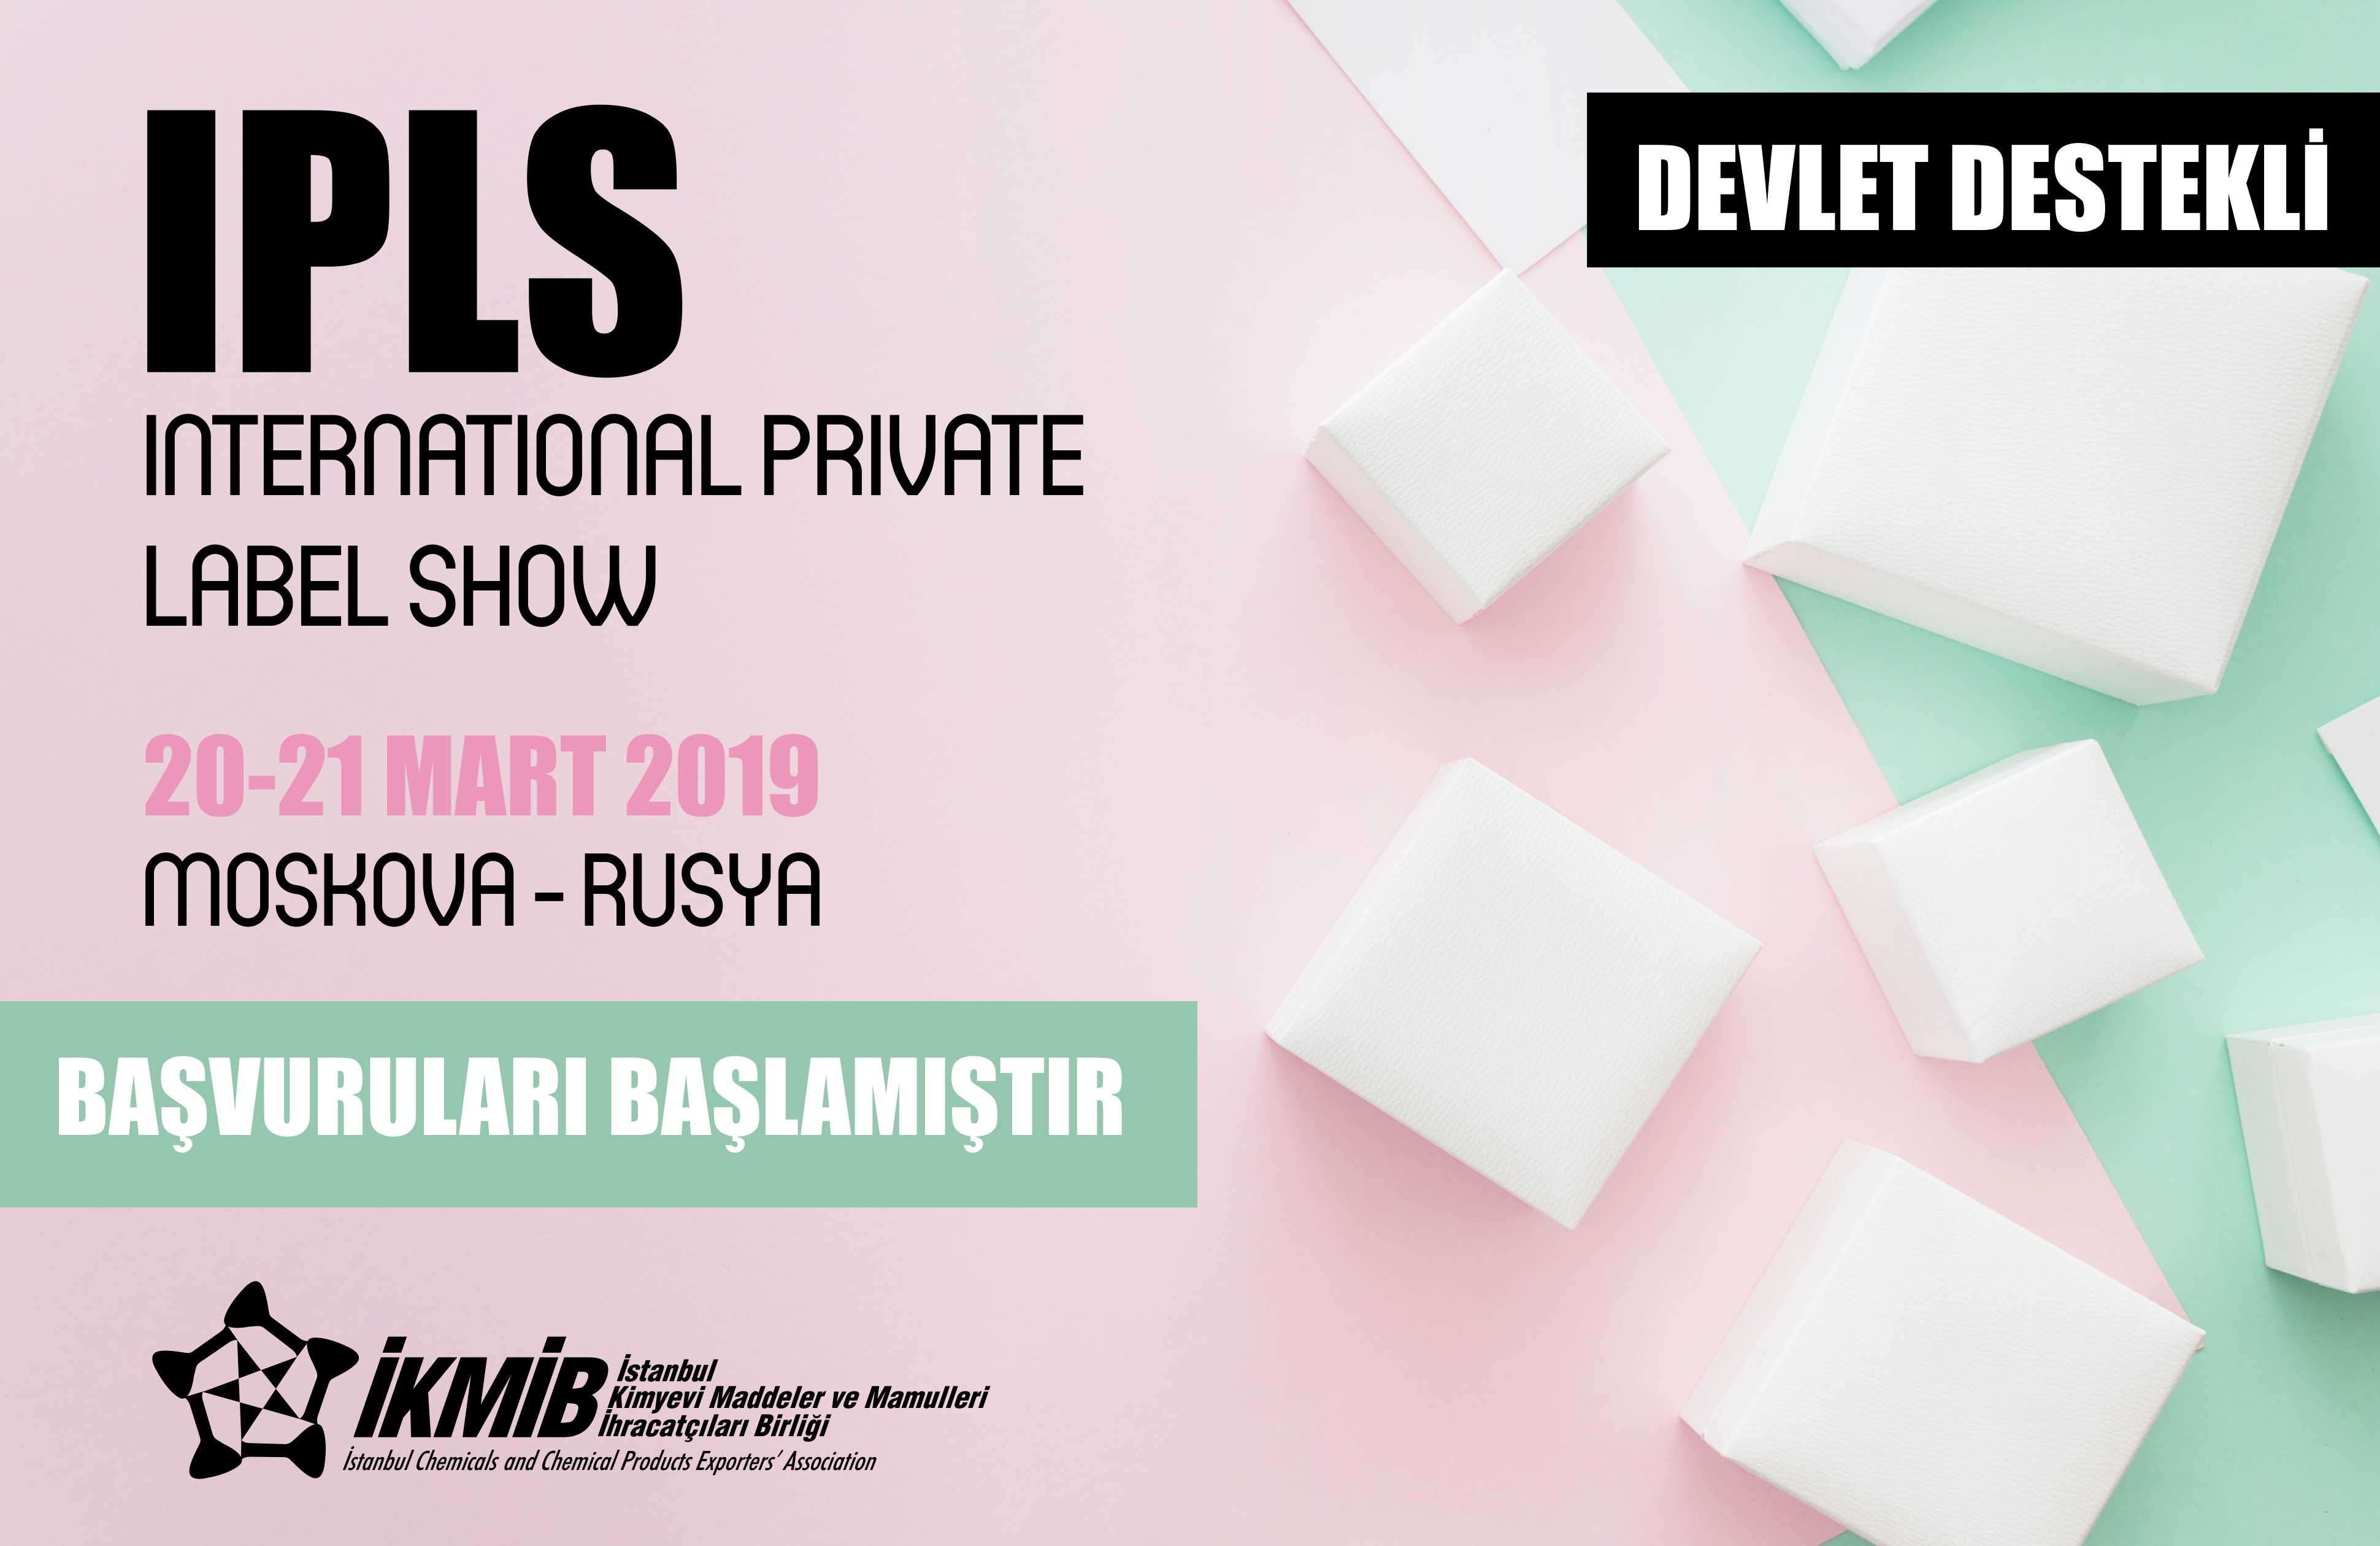 IPLS - International Private Label Show 2019